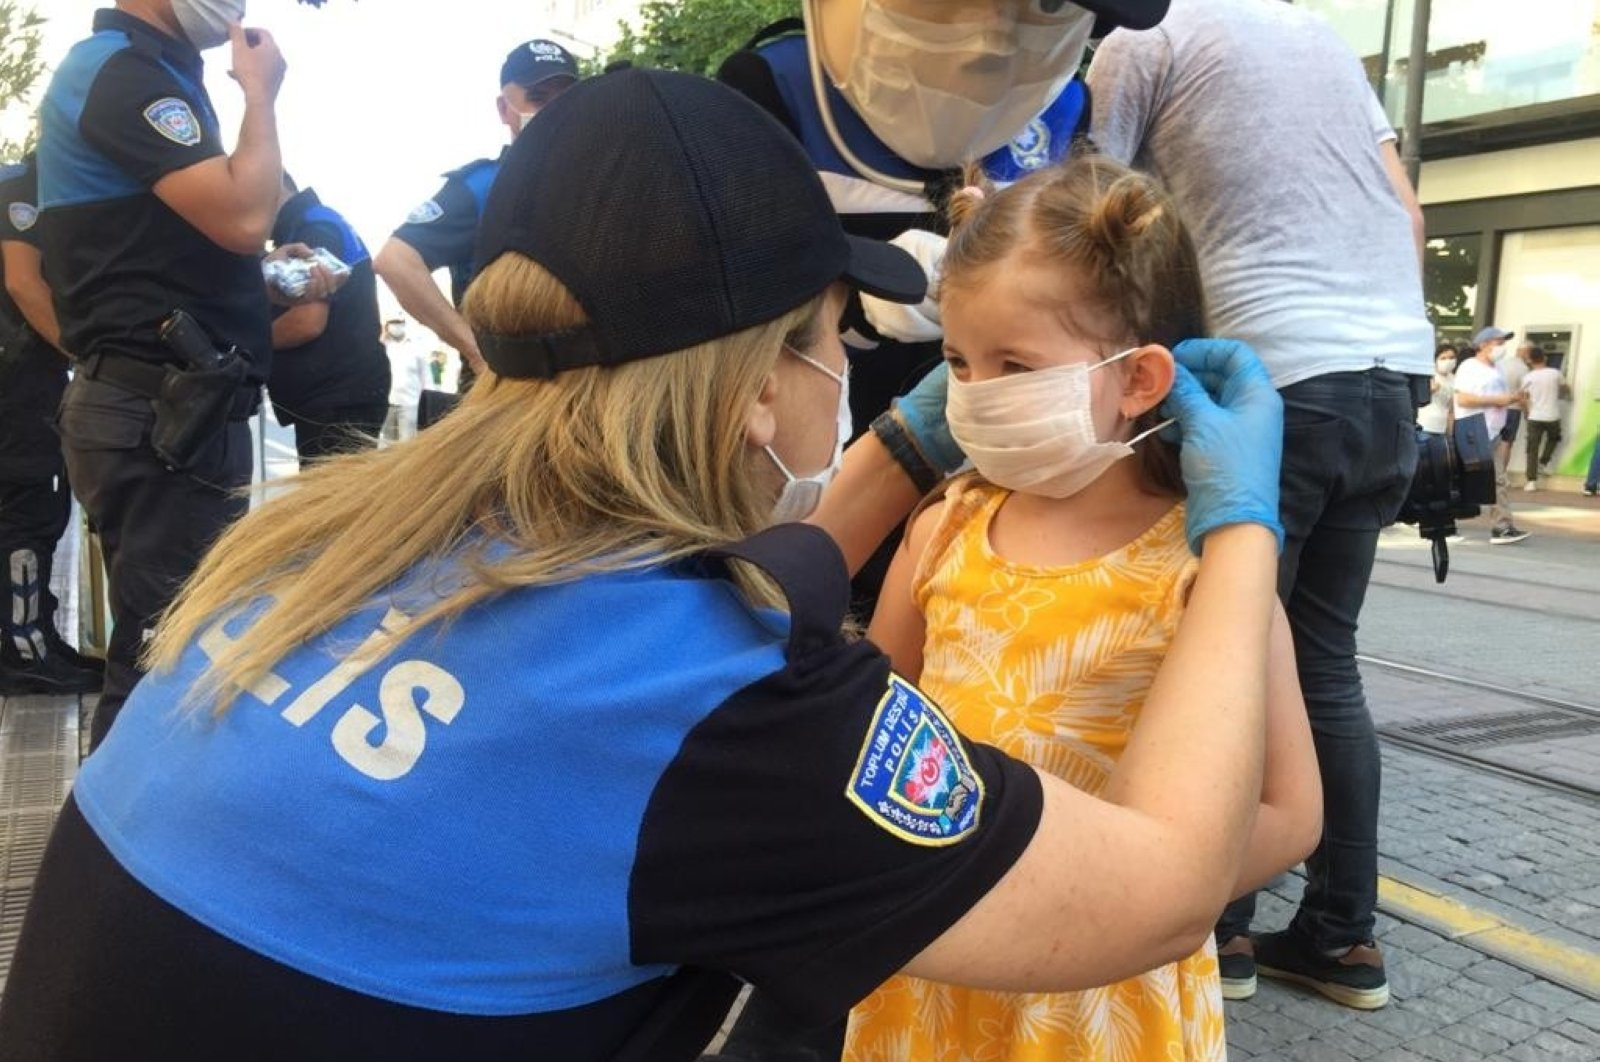 Policewoman helps child to wear a mask correctly as police mascot raises awareness about the usage of masks in public spaces in Eskişehir, Turkey, July 22, 2020. (IHA Photo)